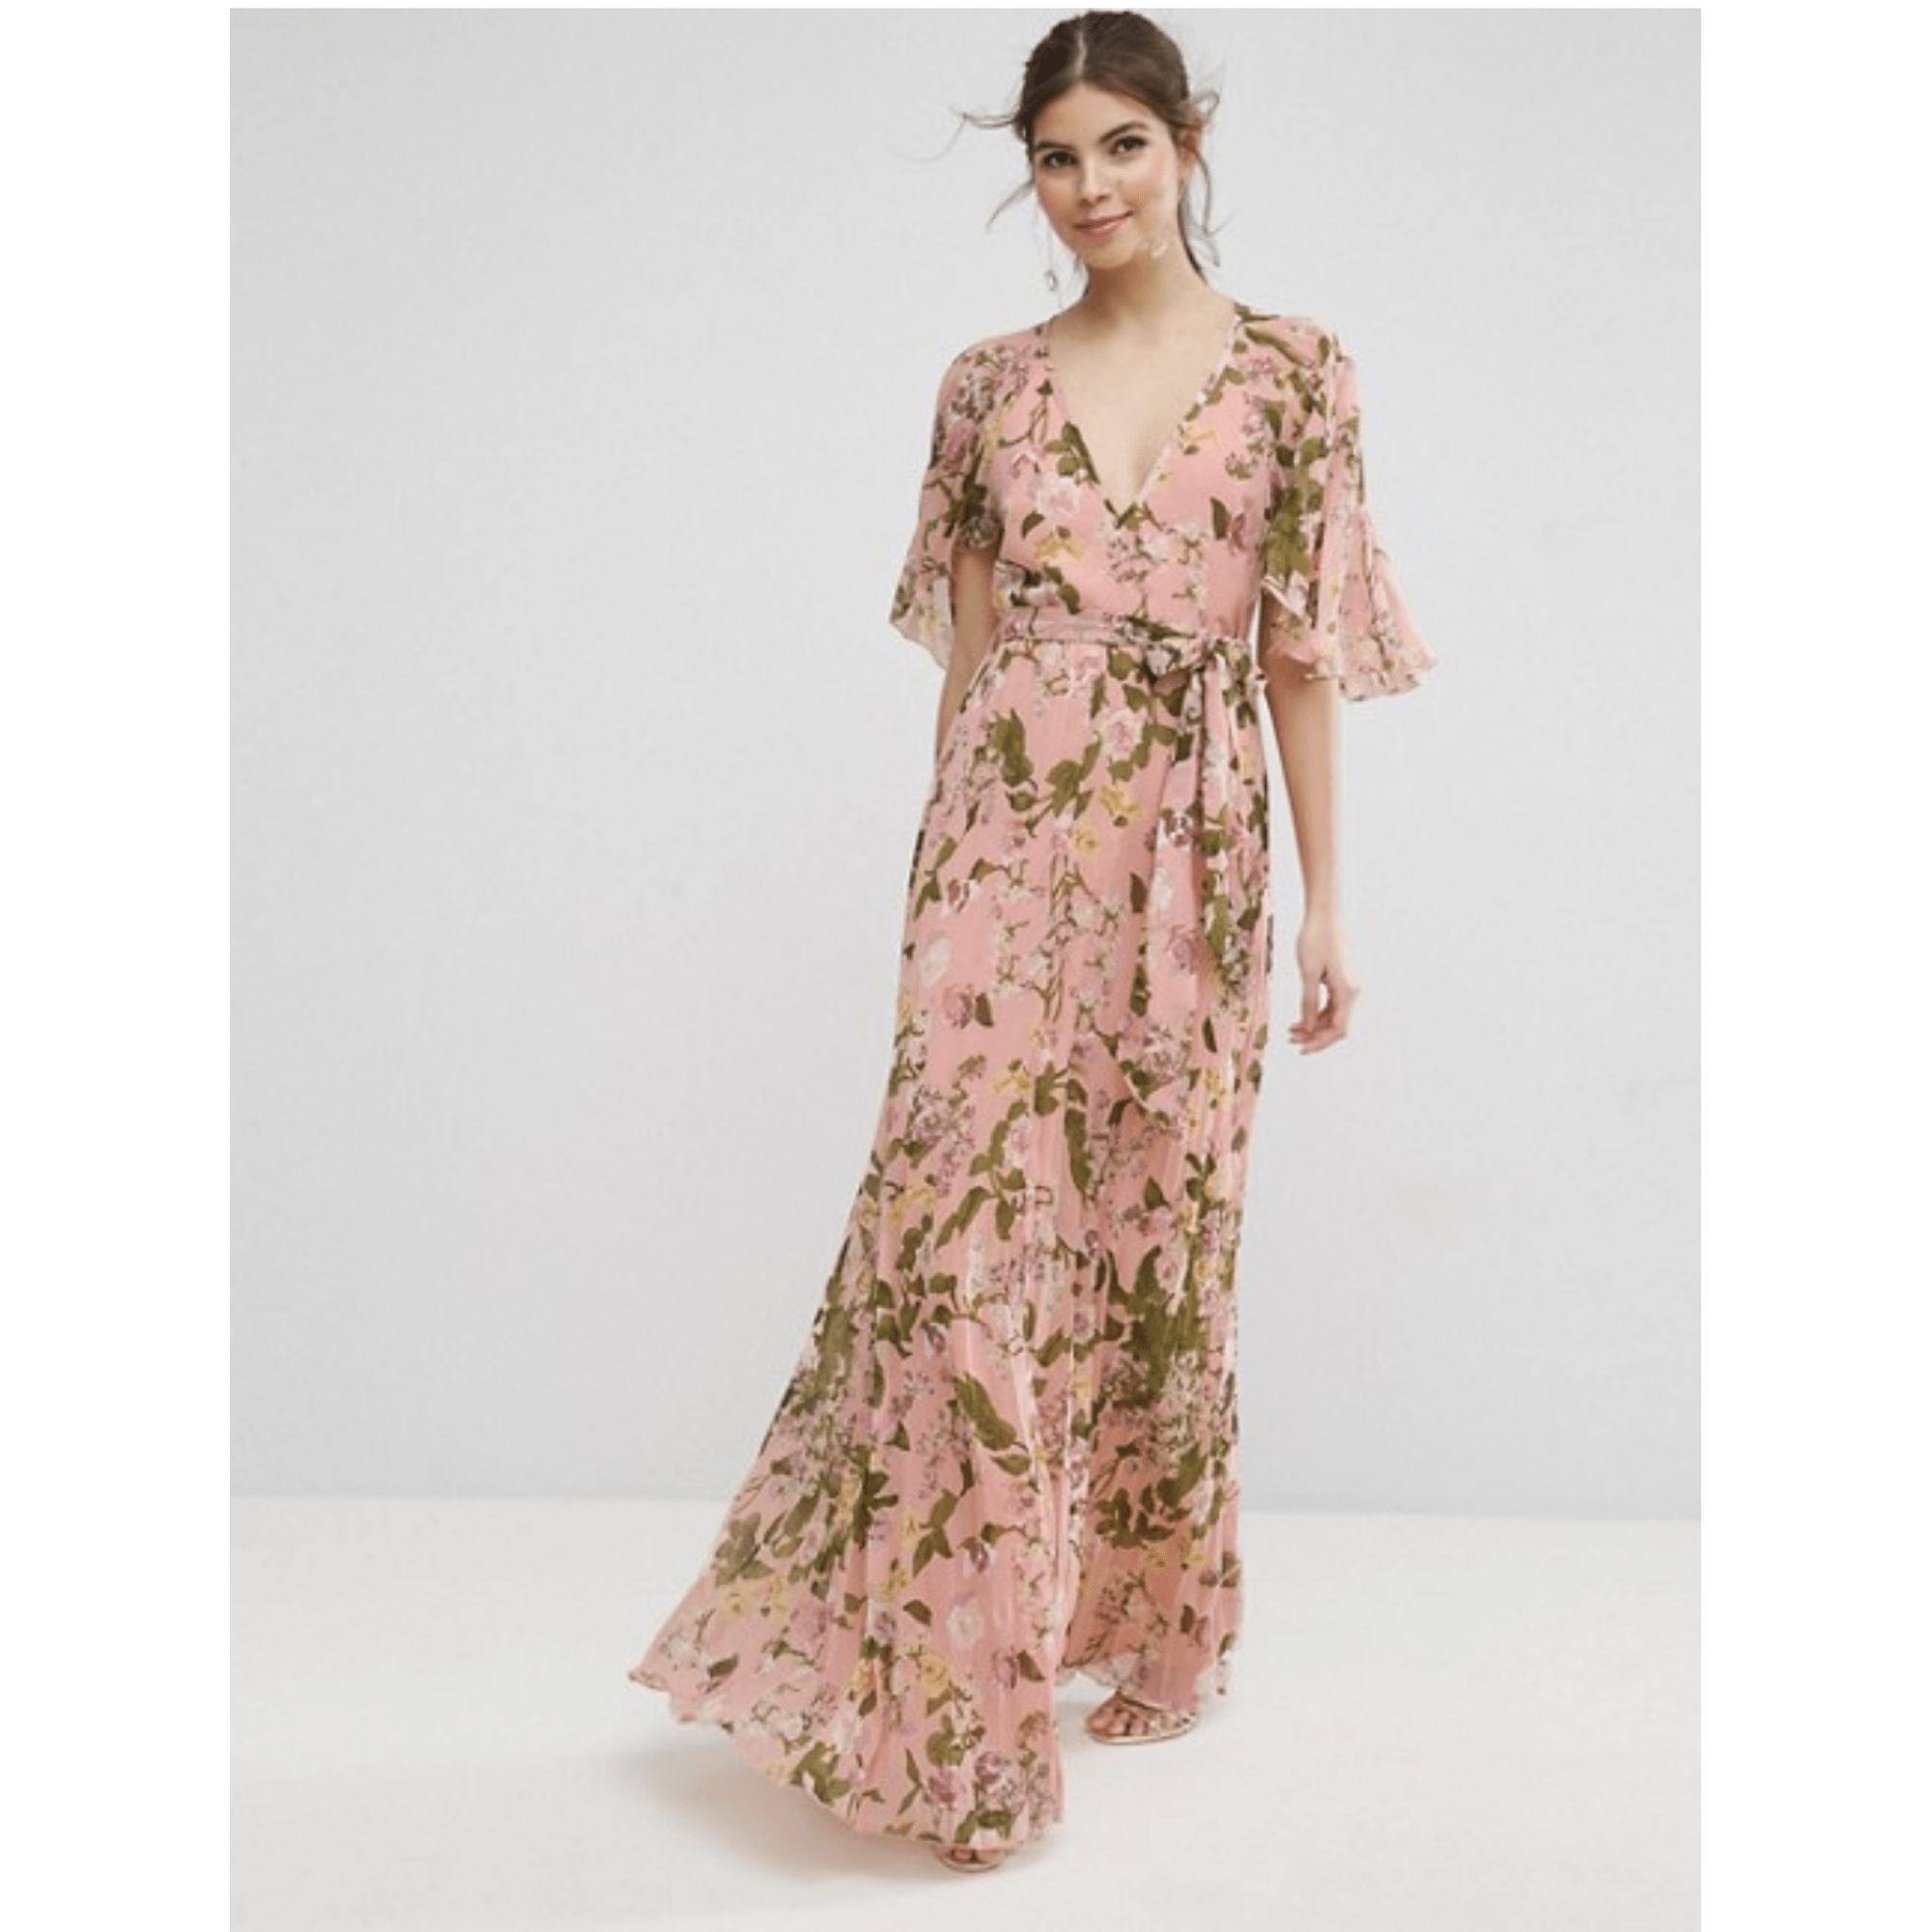 Robe Longue Asos Design 38 M T2 Rose 8107941